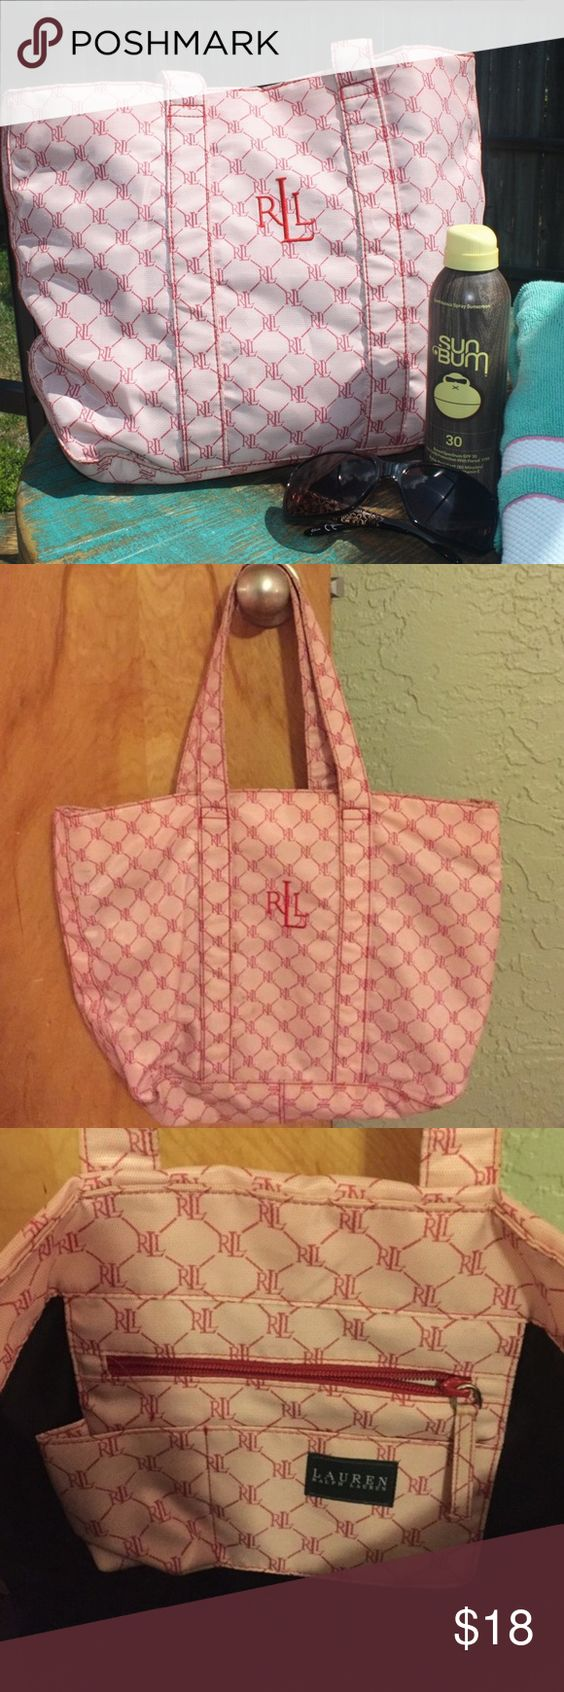 Ralph Lauren Tote Bag Stylish pink and red tone tote bag from Ralph Lauren. Has been previously loved and has some wear as shown in the photos. Still has plenty of life left. This bag is just waiting for someone to take it to them beach! Lauren Ralph Lauren Bags Totes